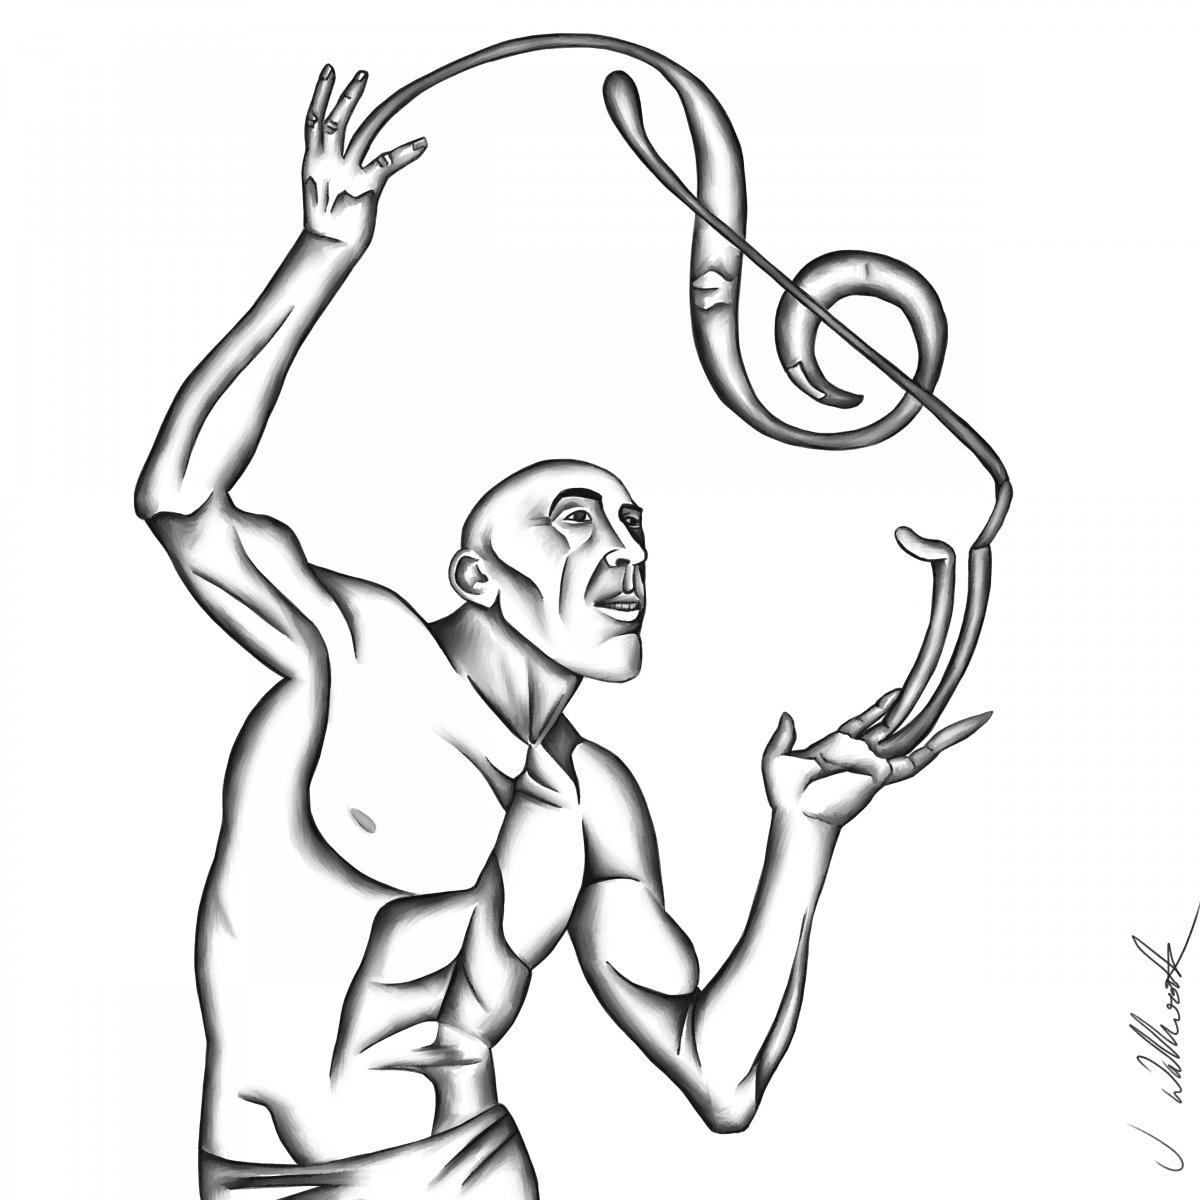 A man whose fingers swirl into the shape of a treble clef.